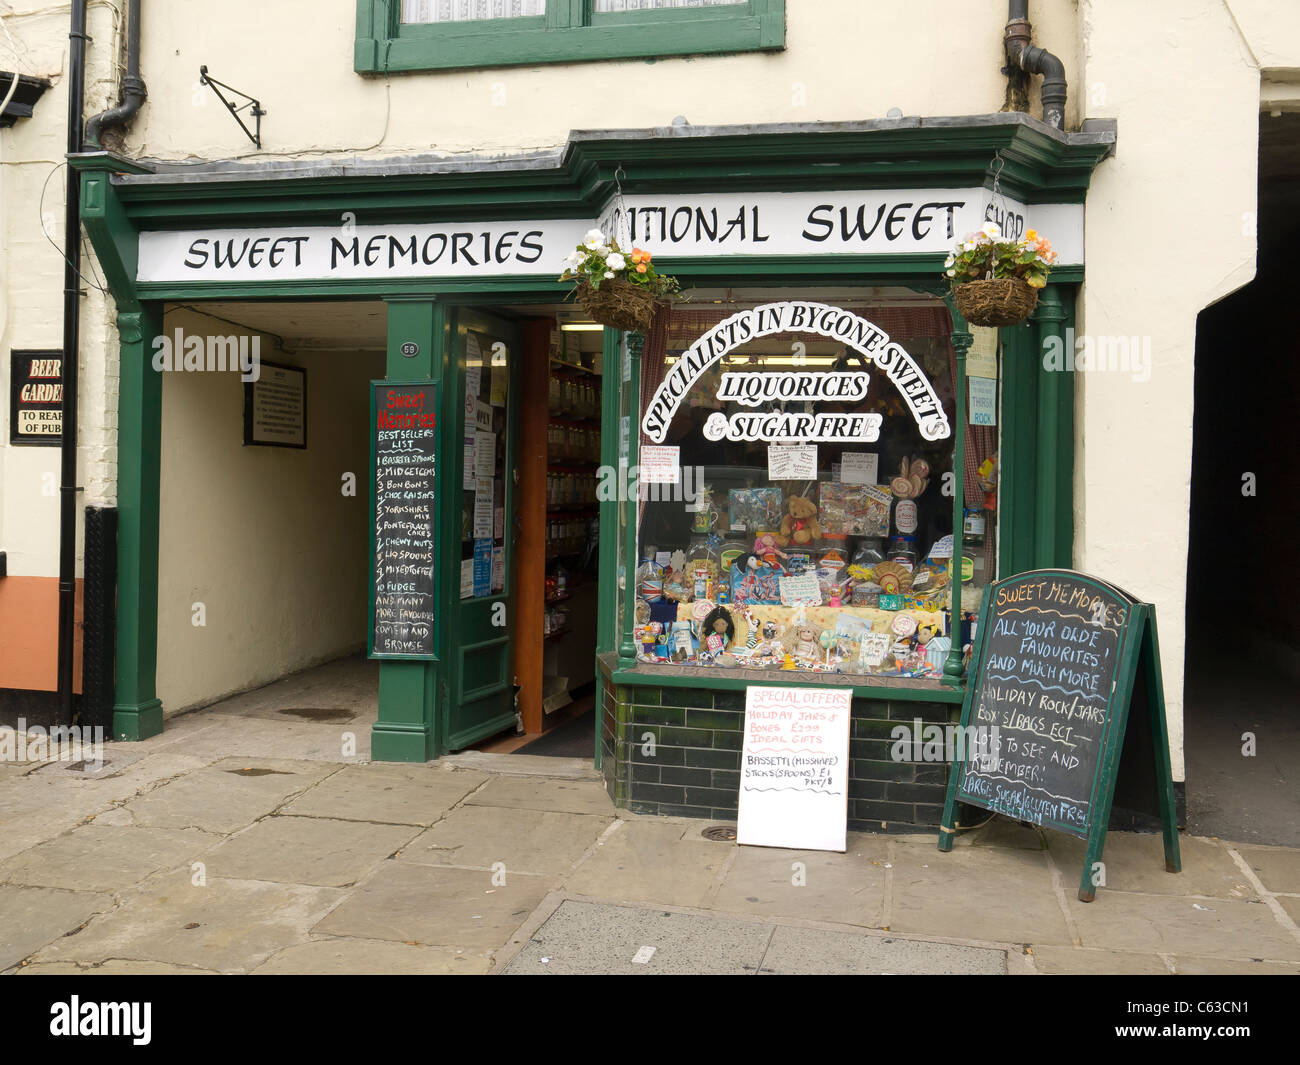 Small Traditional Sweet Shop Selling All Kinds Of Old